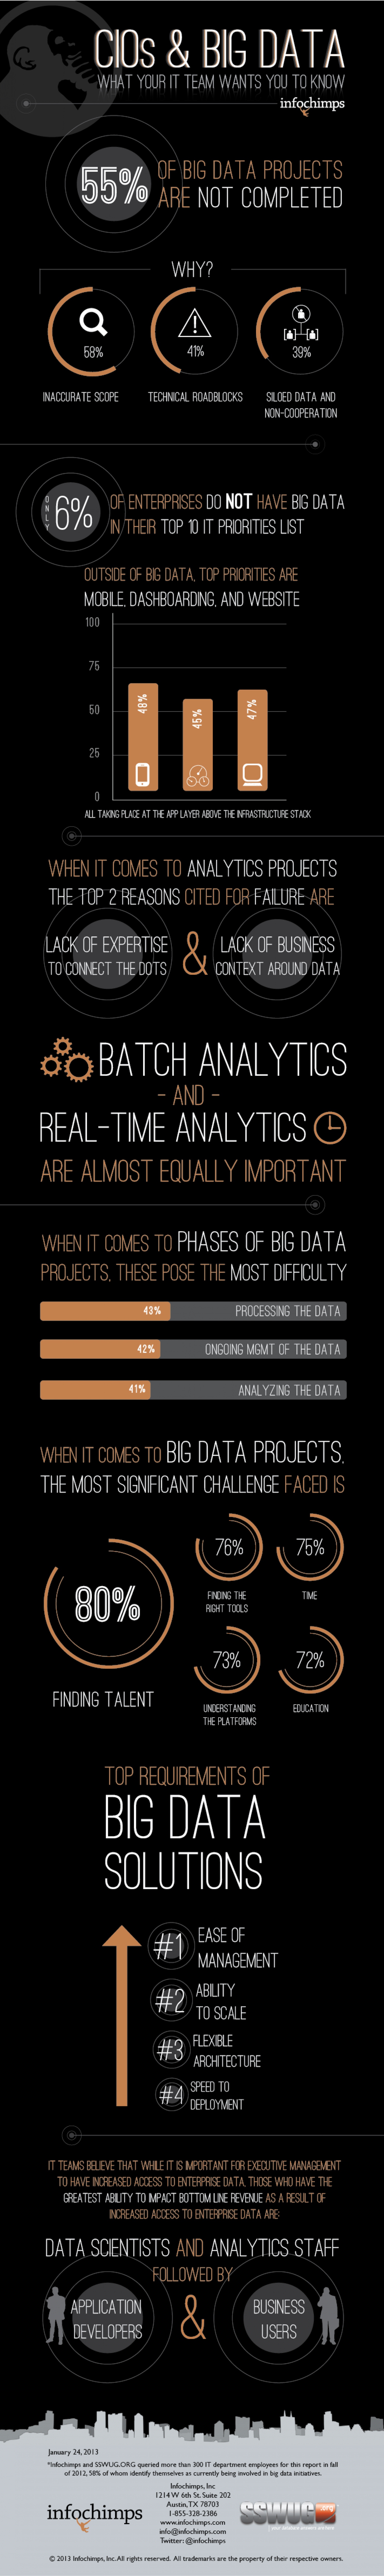 CIOs & Big Data Infographic